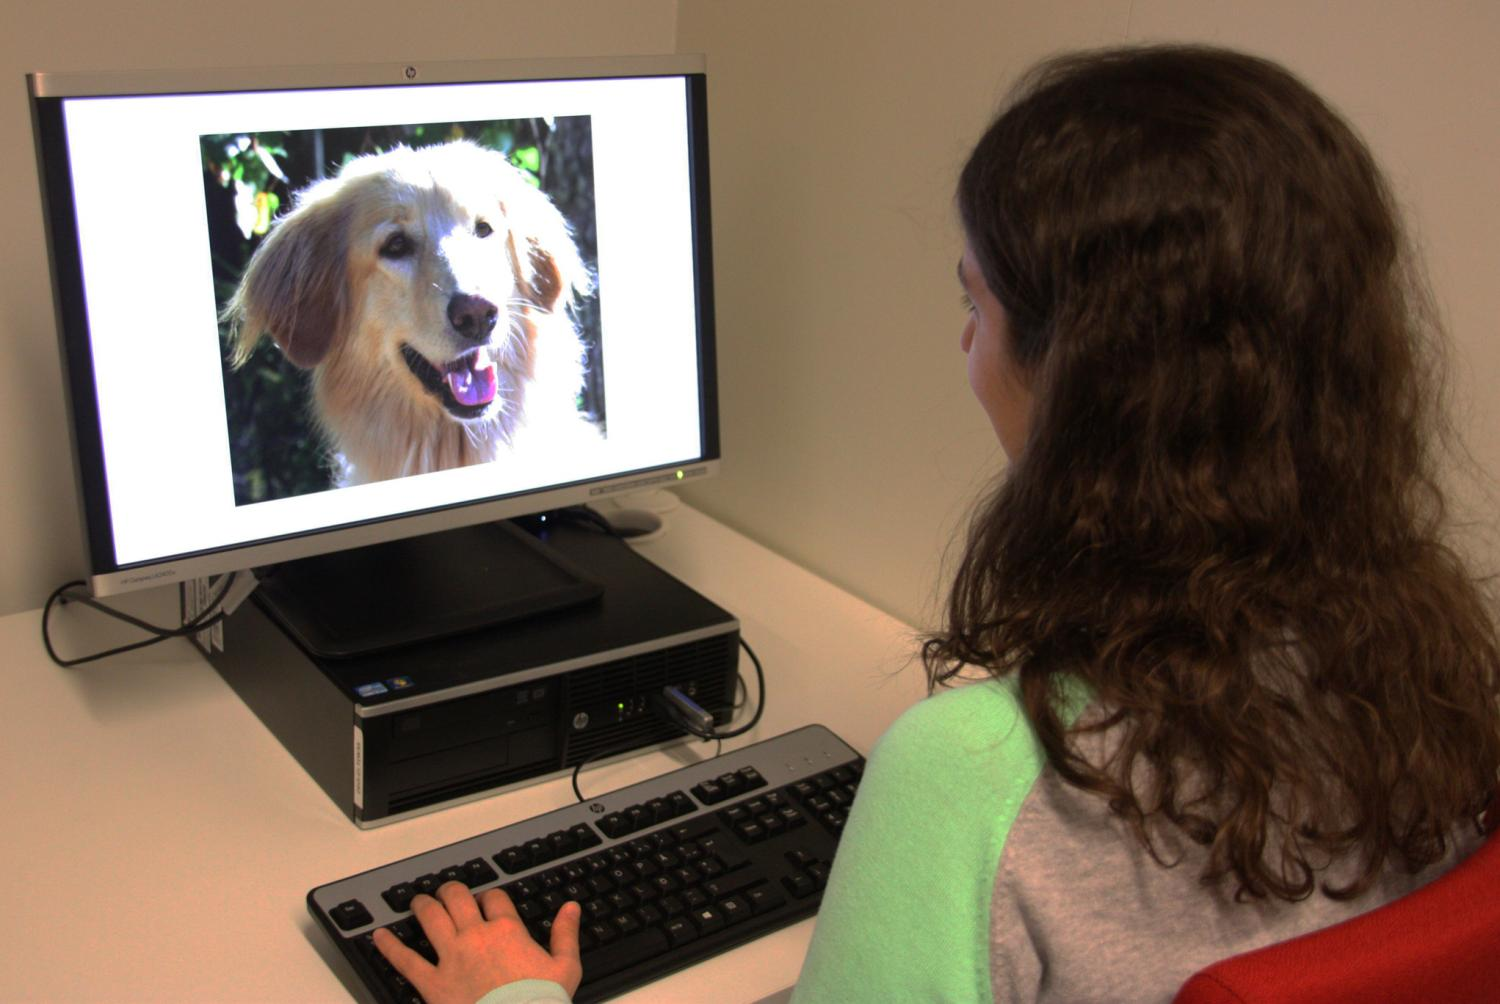 Empathetic people experience dogs' expressions more strongly